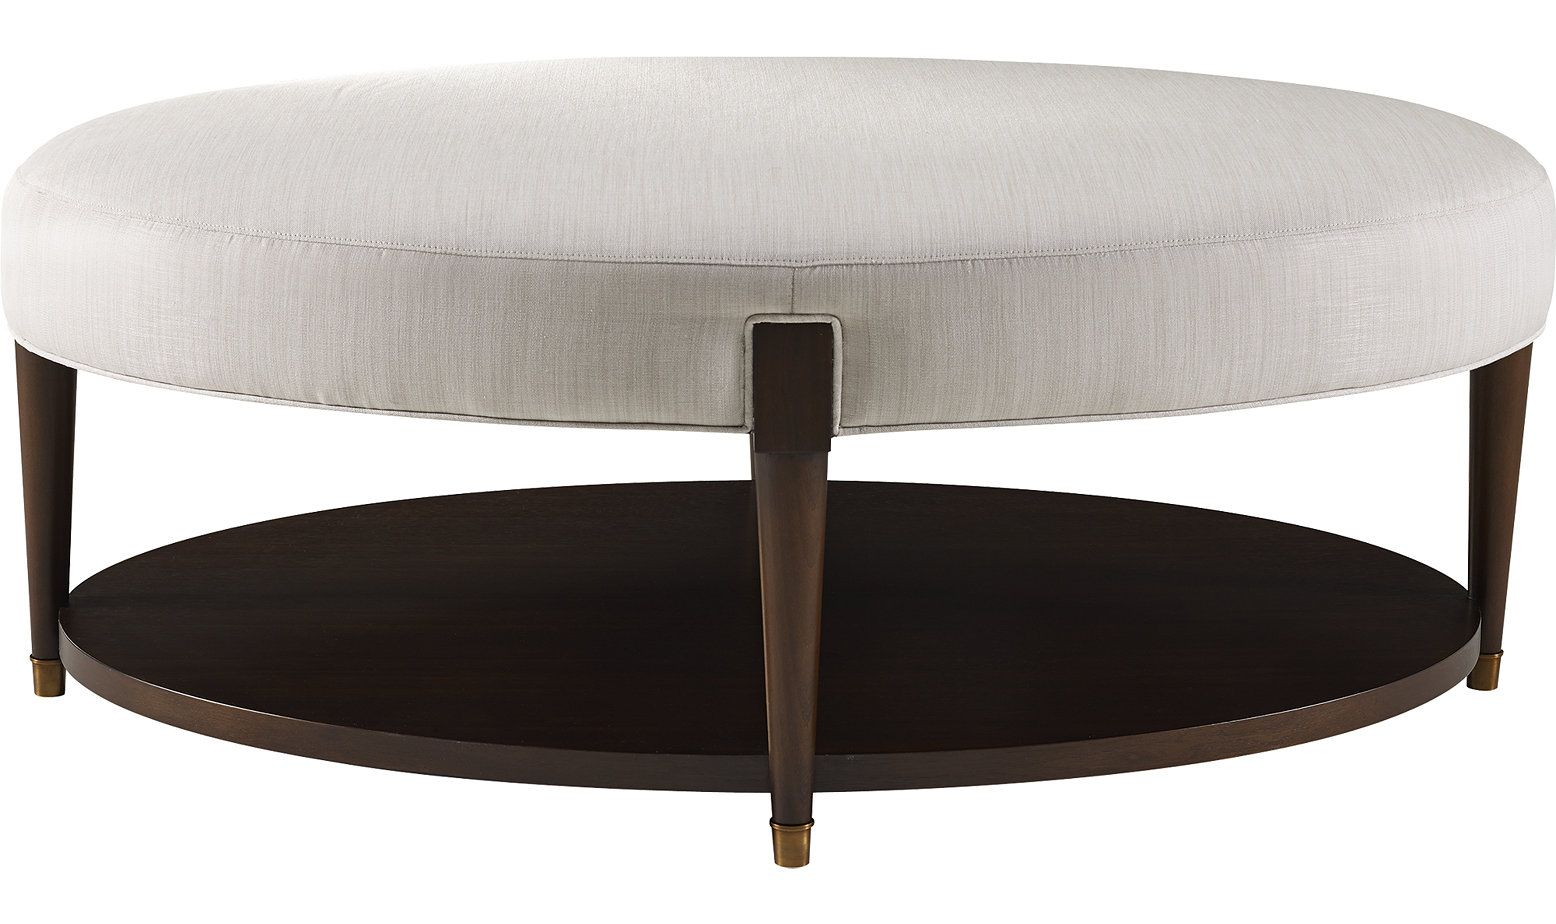 Ondine Oval Cocktail Bench by Barbara Barry - 3690 | Baker Furniture ...